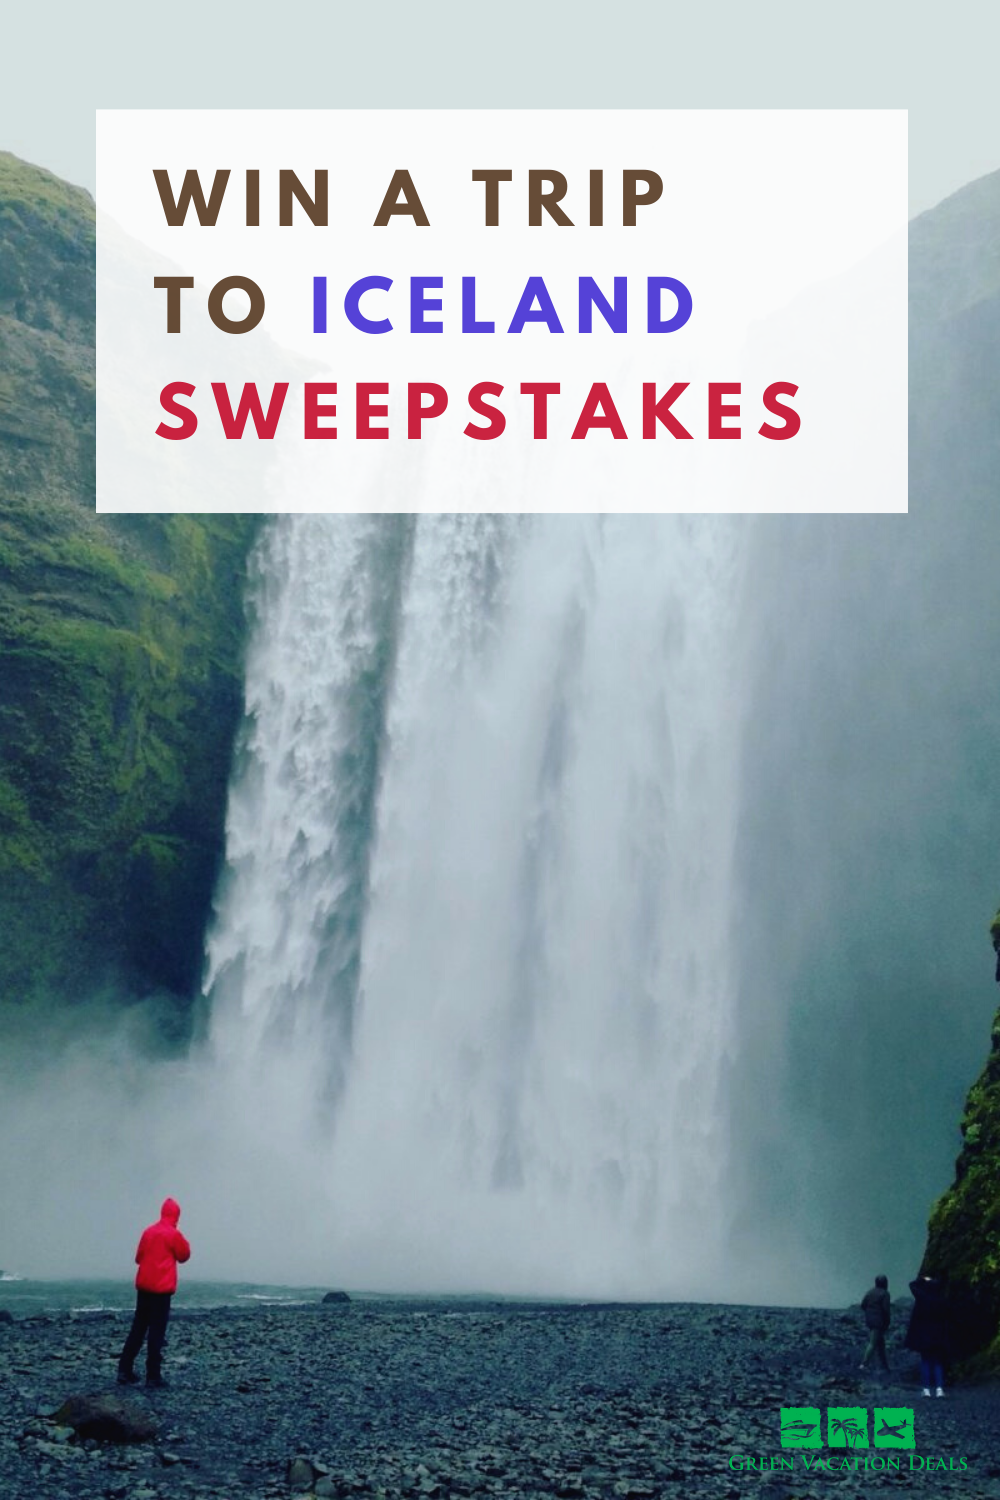 BuzzFeed Win A Trip To Iceland Sweepstakes: airfare voucher, 4 night hotel stay, Northern Lights Safari, Snowshoeing Experience, City Tour, etc. ARV=$4,000. #Iceland #Sweepstakes #Giveaway #TravelForFree #CheapTravel #BudgetTravel #BudgetTraveler #Contest #LoveTravel #LoveToTravel #TravelBug #NorthernLights #Snowshoeing #Wanderlust #DreamTrip #trip